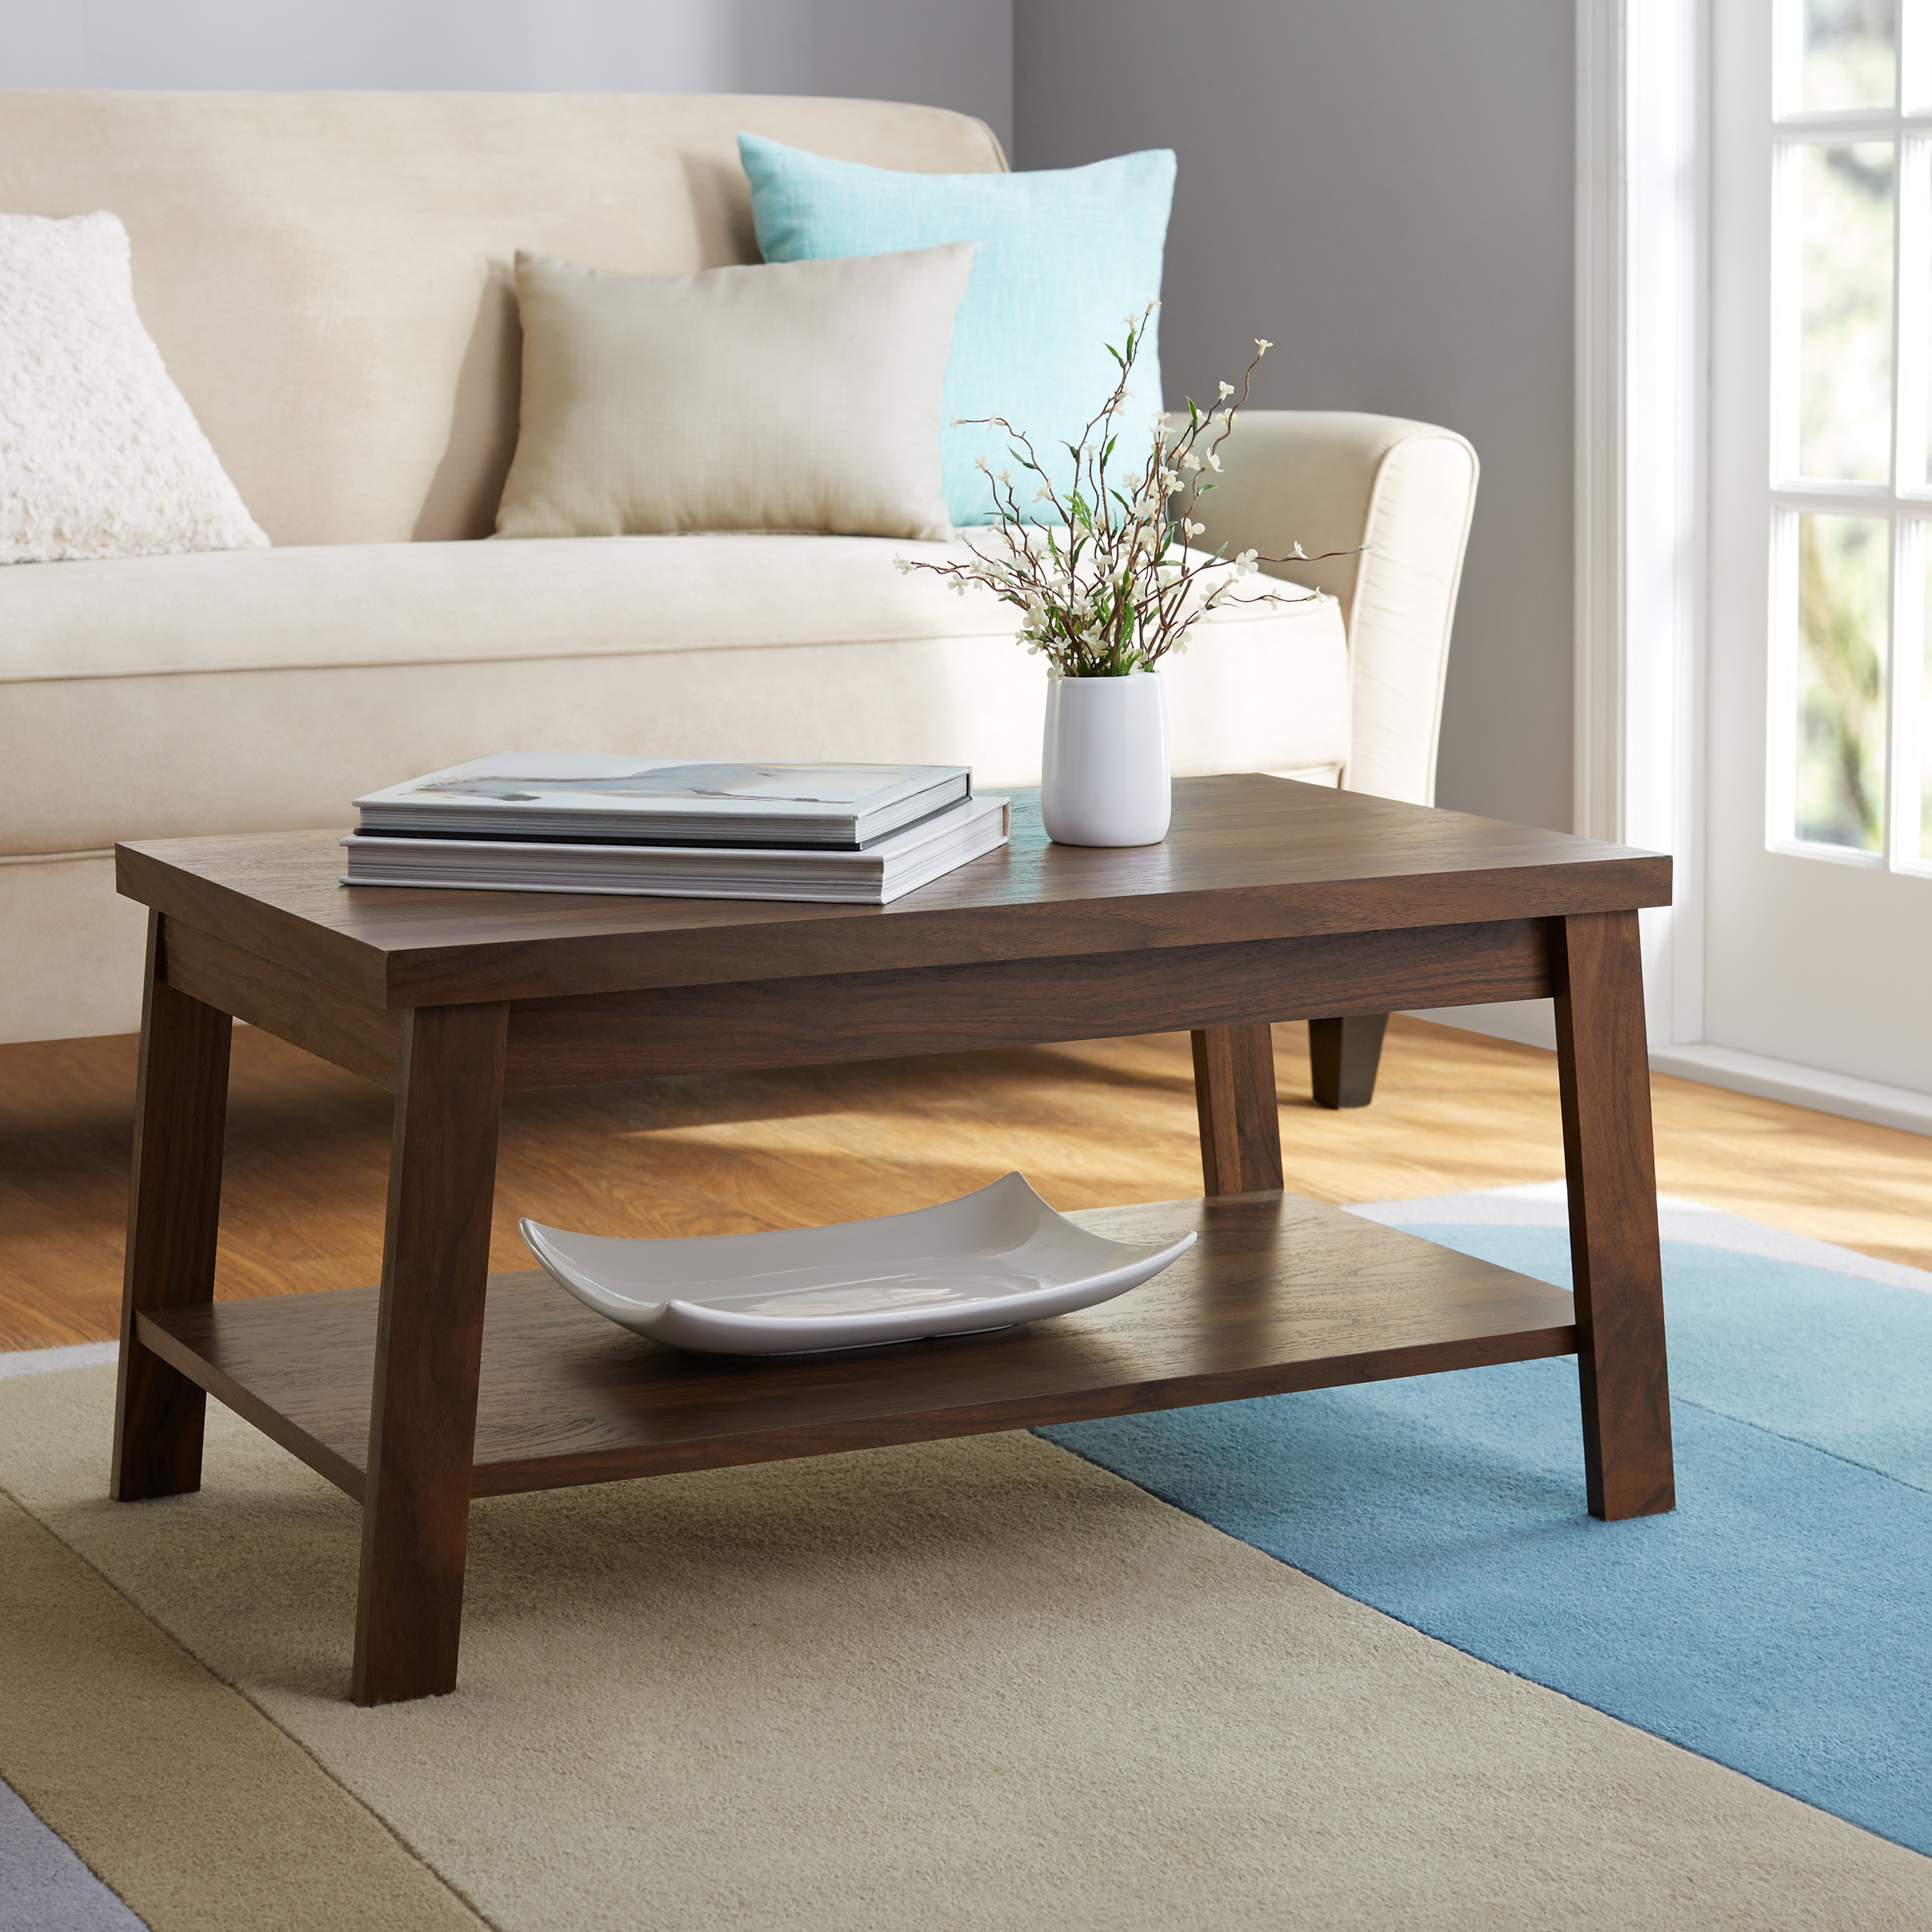 Mainstays Logan Coffee Table, Multiple Finishes – Walmart Regarding Most Recently Released Logan Cocktail Tables (View 2 of 20)